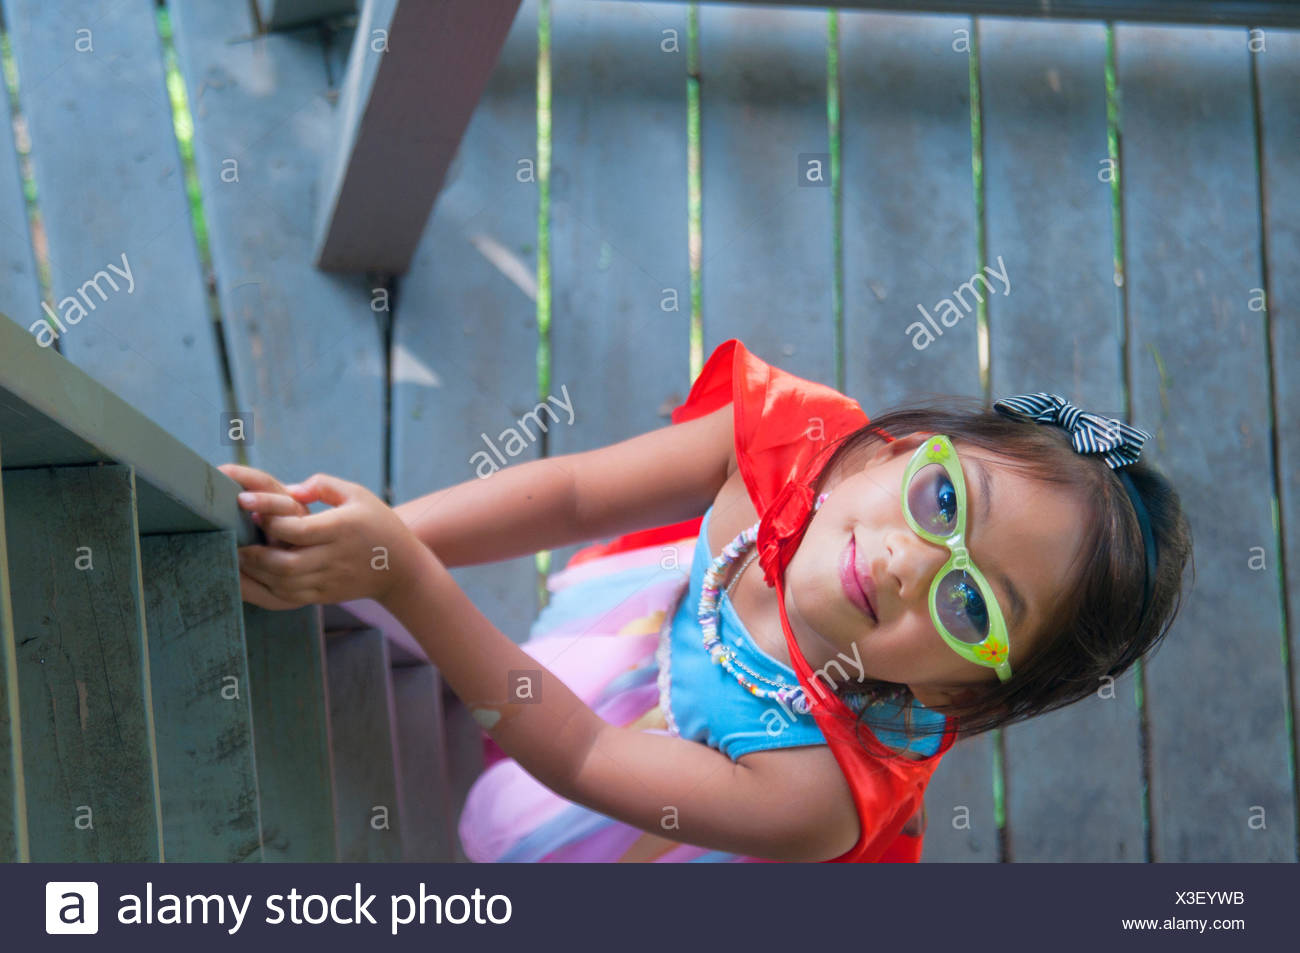 Young girl wearing cape, climbing wooden steps, high angle view - Stock Image